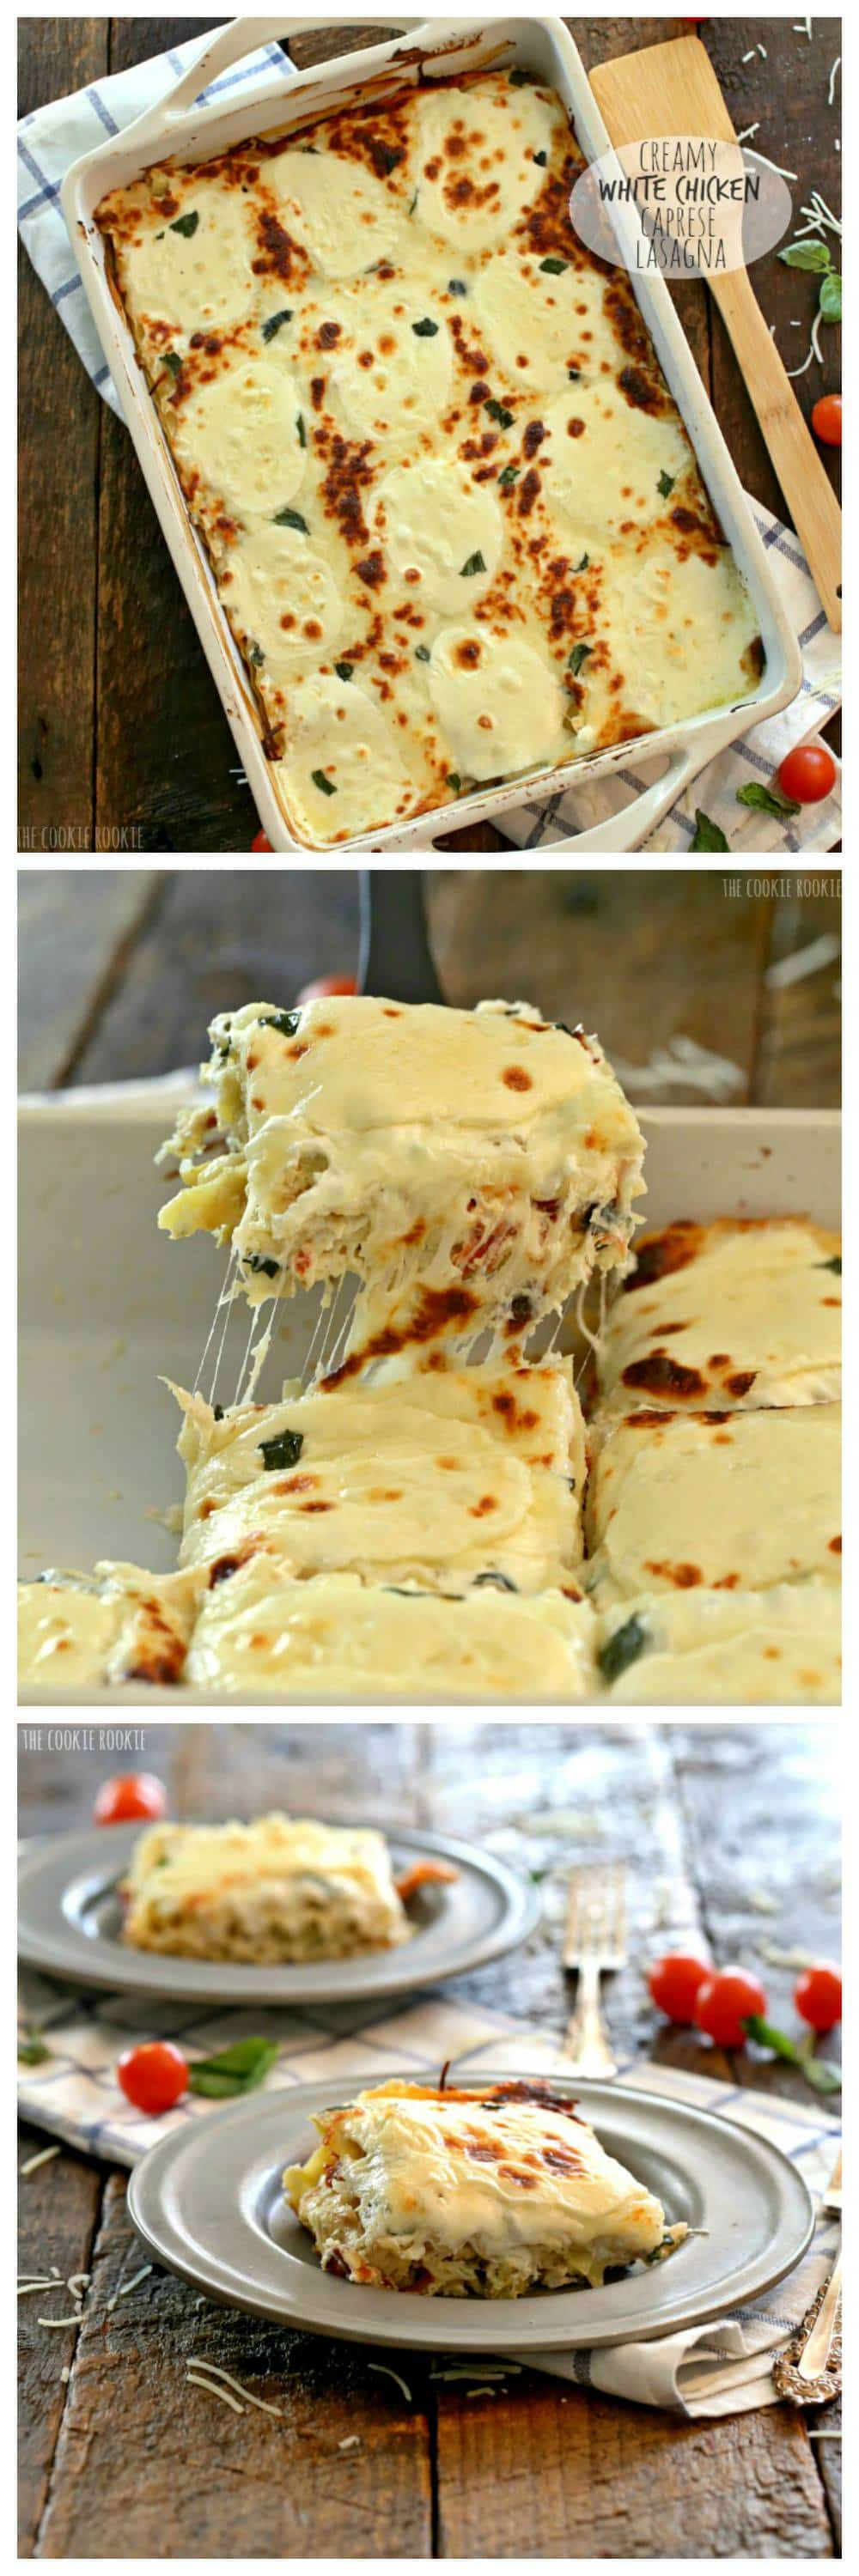 Creamy, cheesy White Chicken Caprese Lasagna is an easy favorite meal ...